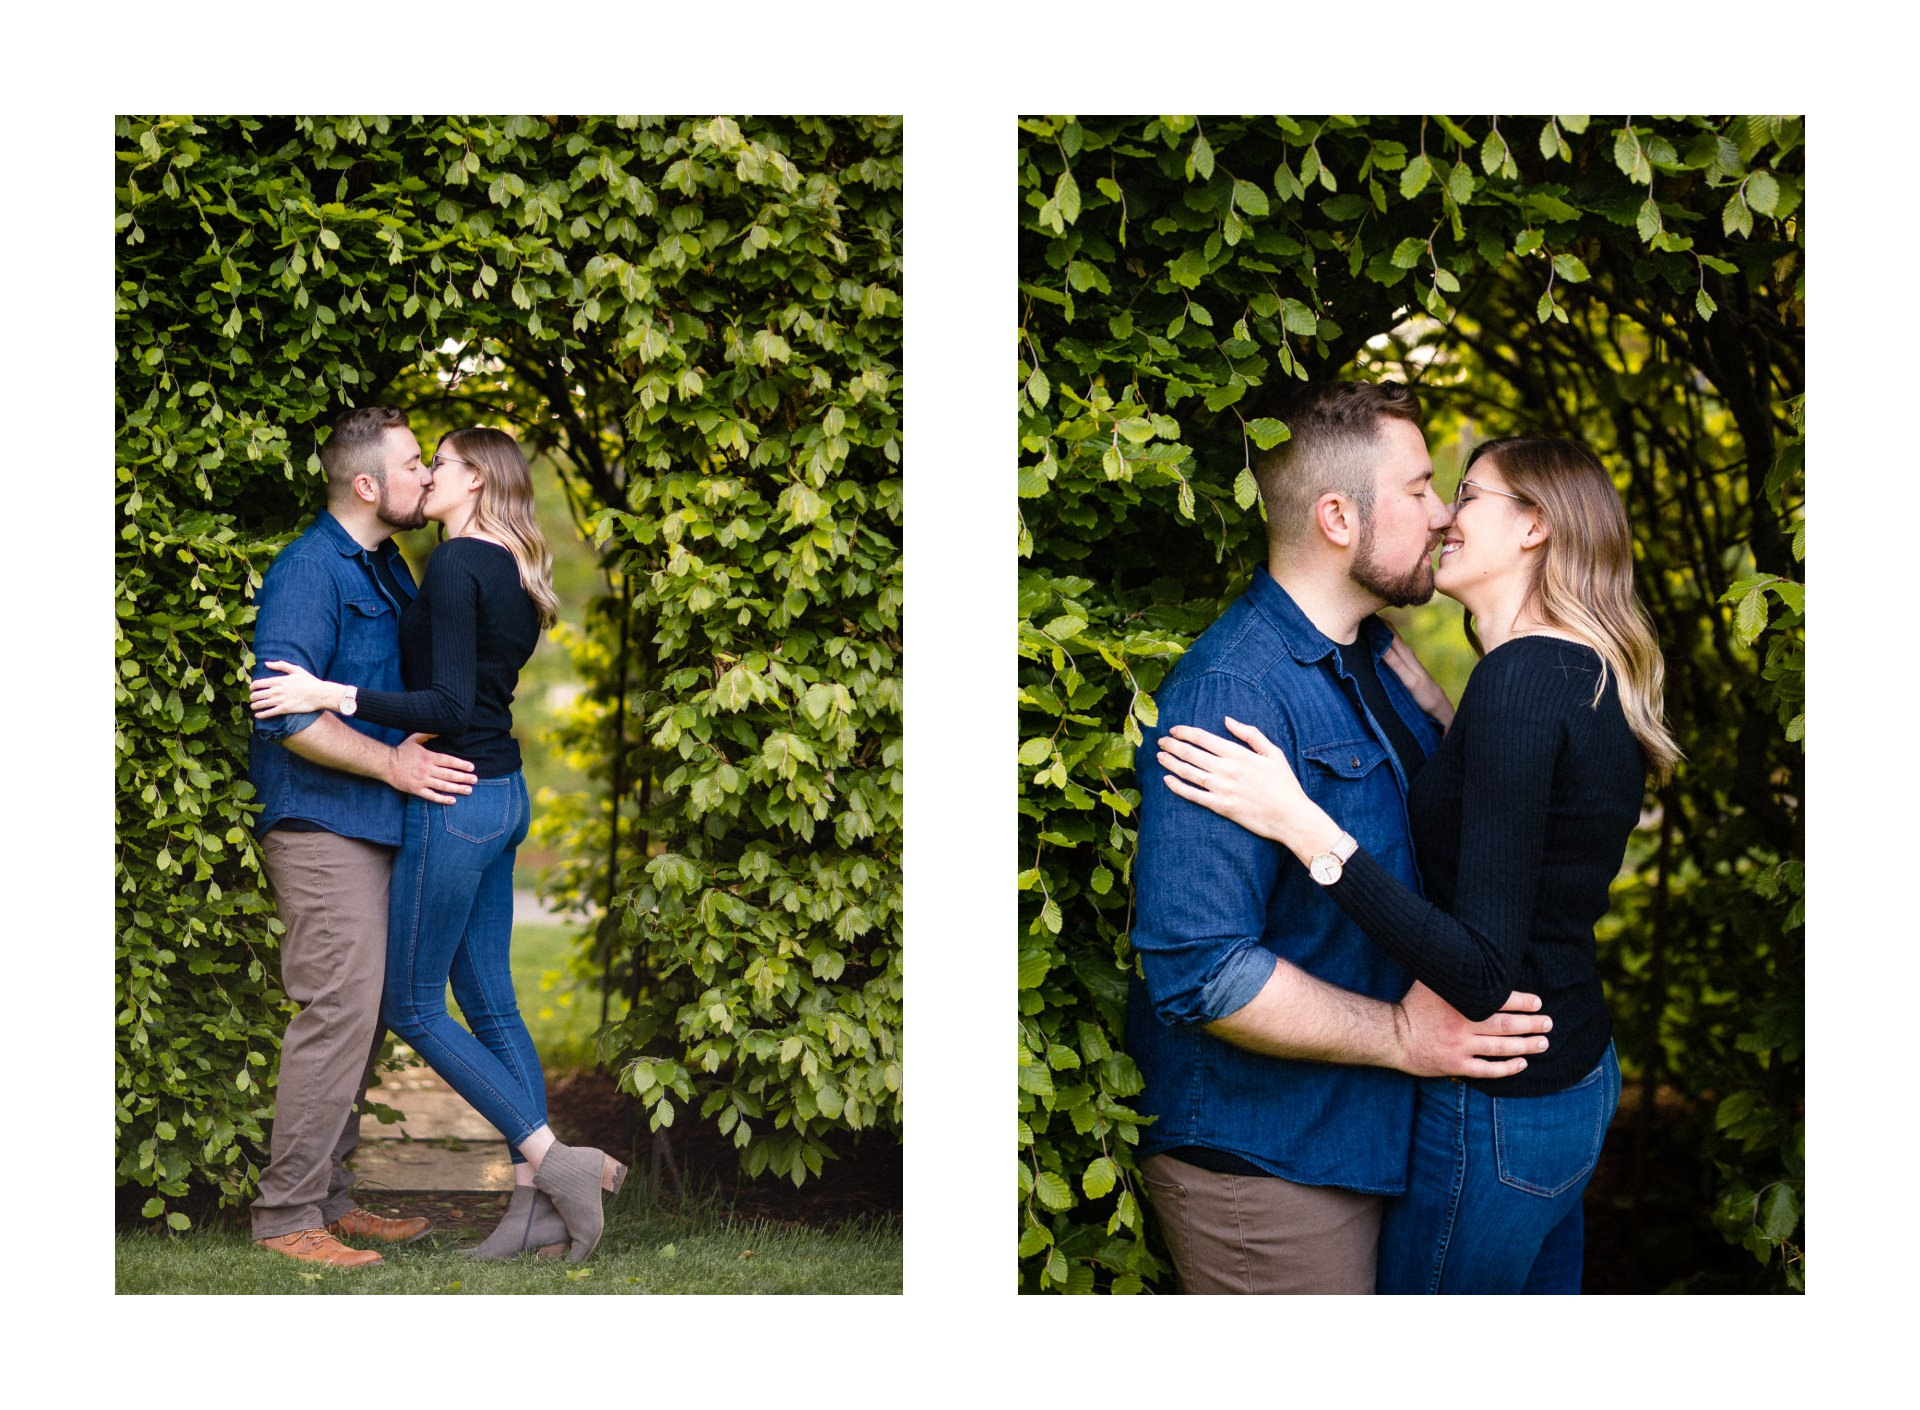 Spring Cleveland Botanical Gardens Engagement Photos 7.jpg